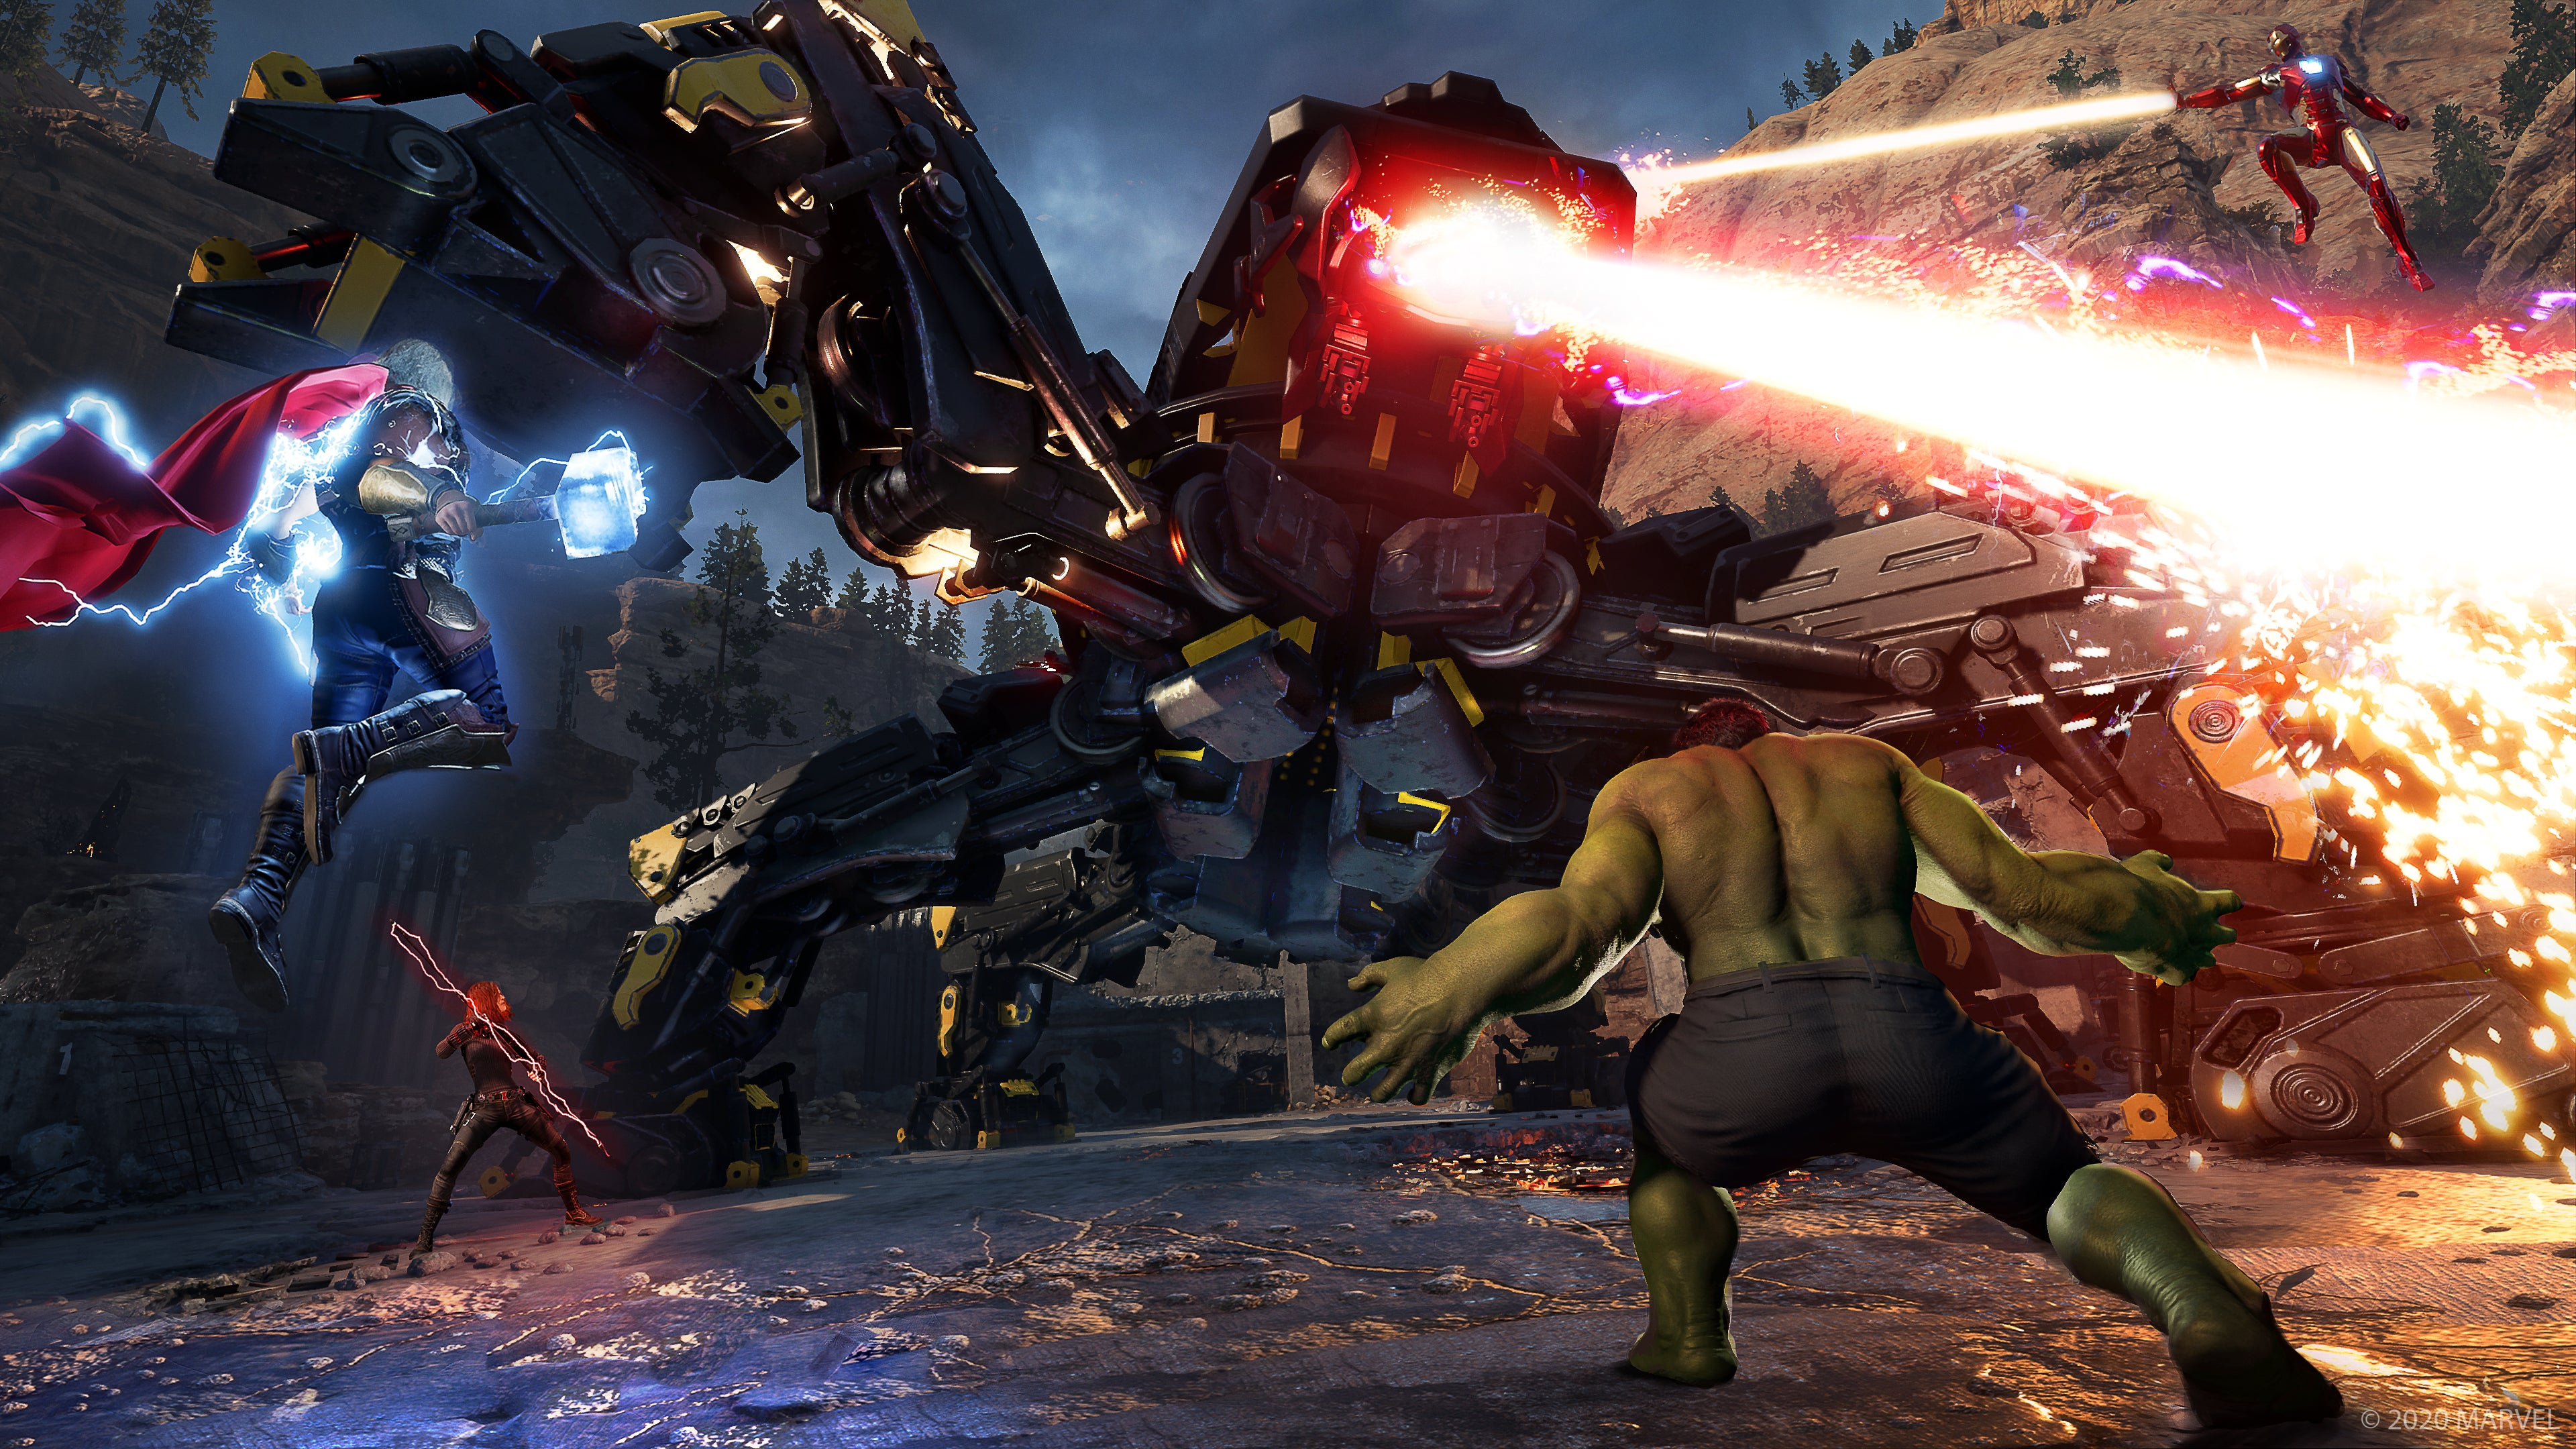 Thor & Incredible Hulk do battle against a Quad Mech shooting a laser from its eye